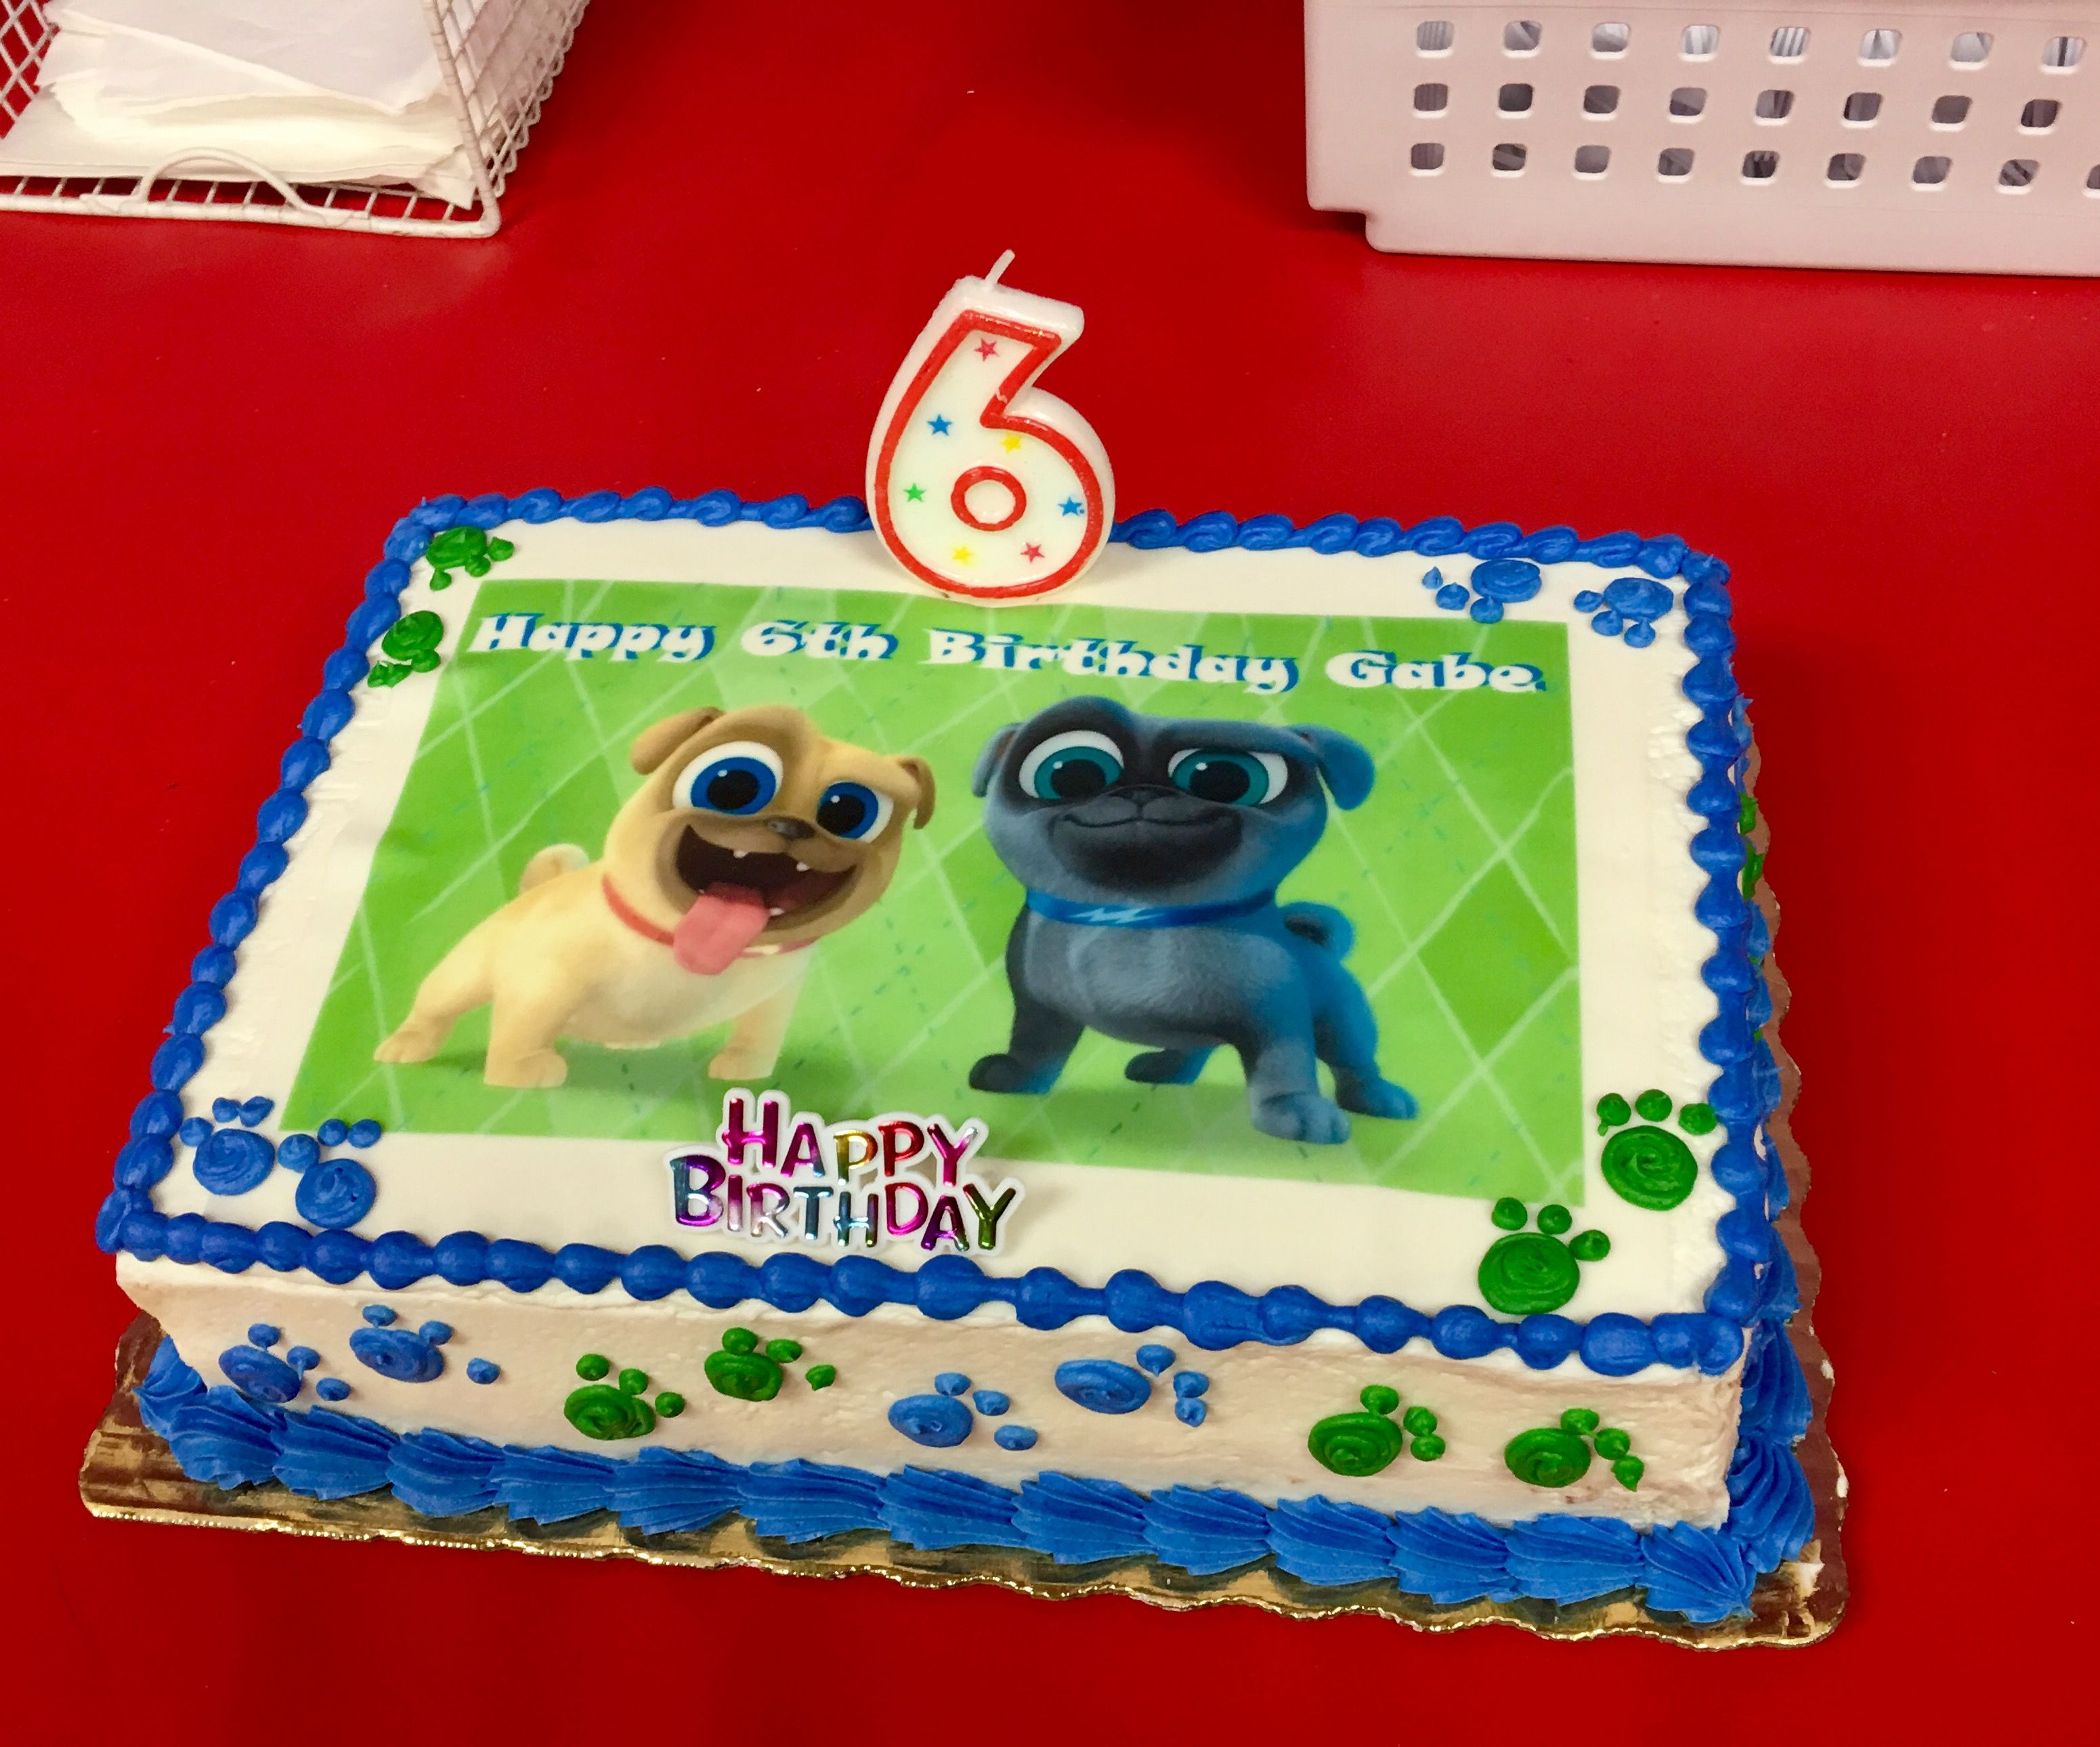 Image Result For Puppy Dog Pals Cake Fiesta De Cumpleanos